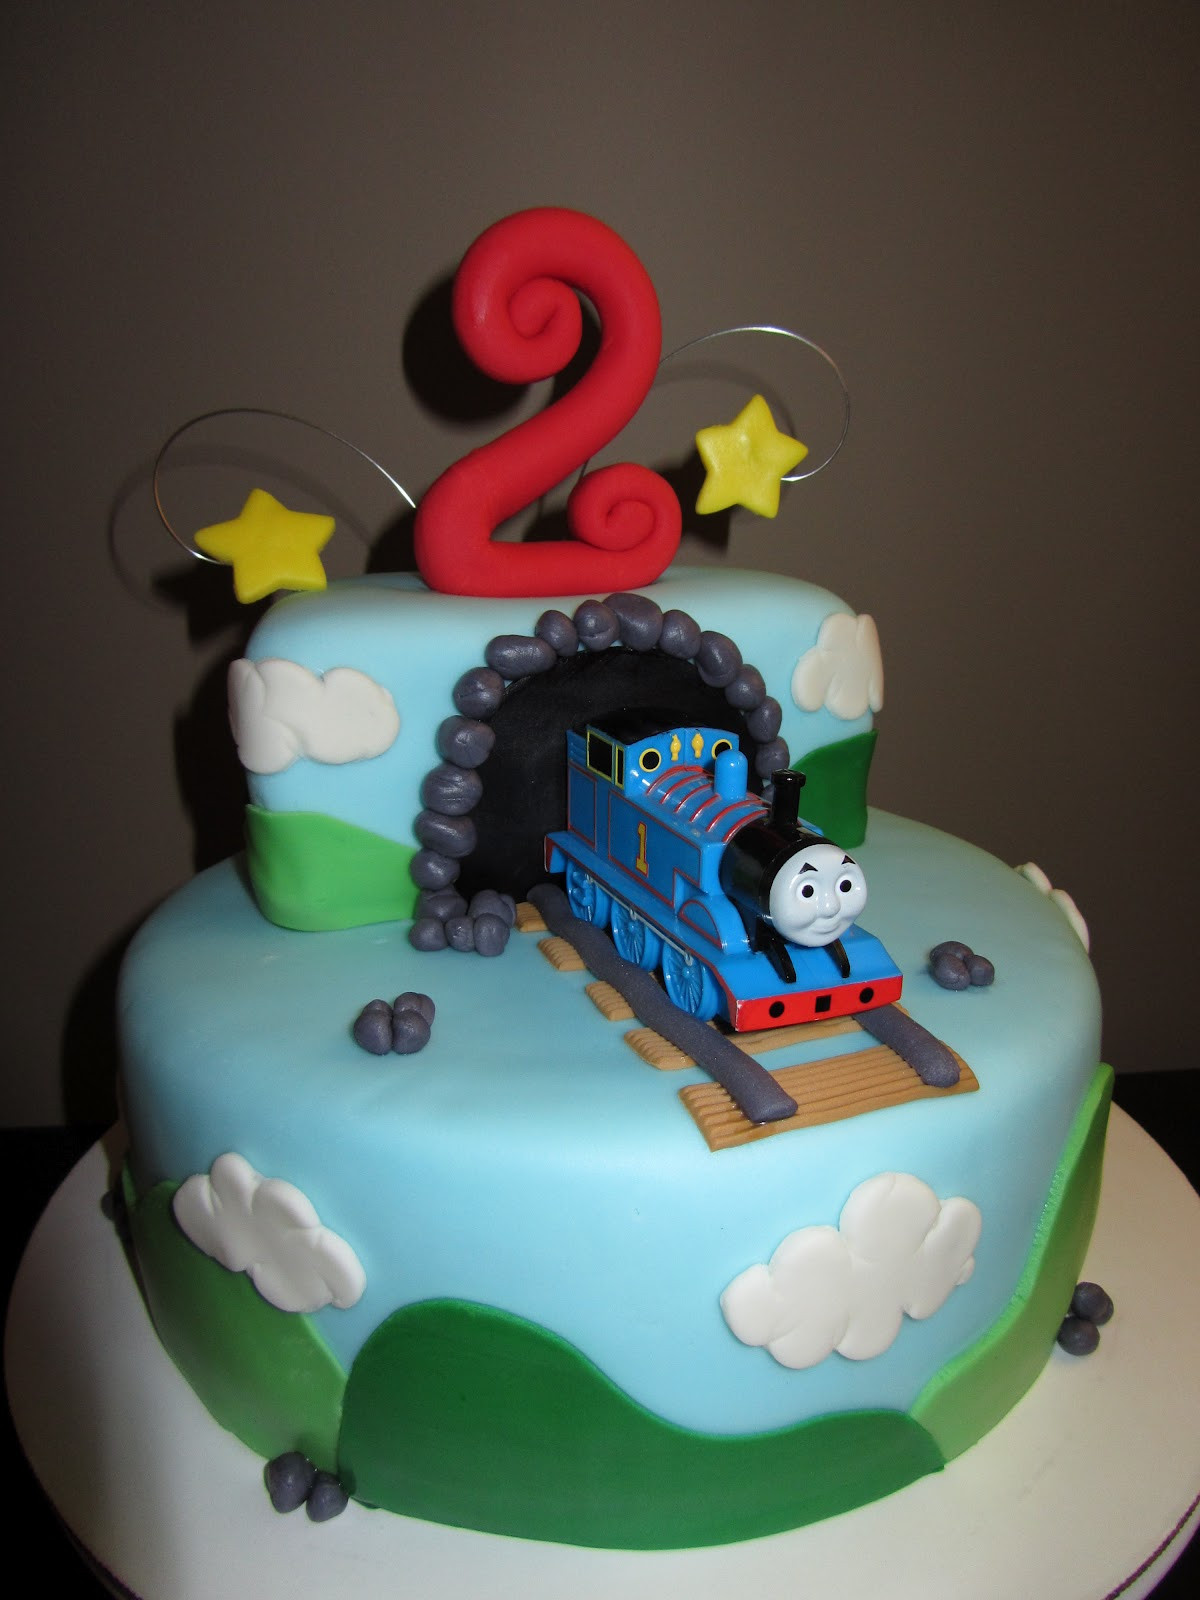 Best ideas about Thomas Birthday Cake . Save or Pin The Sweet Life Thomas The Train 2nd Birthday Cake Now.